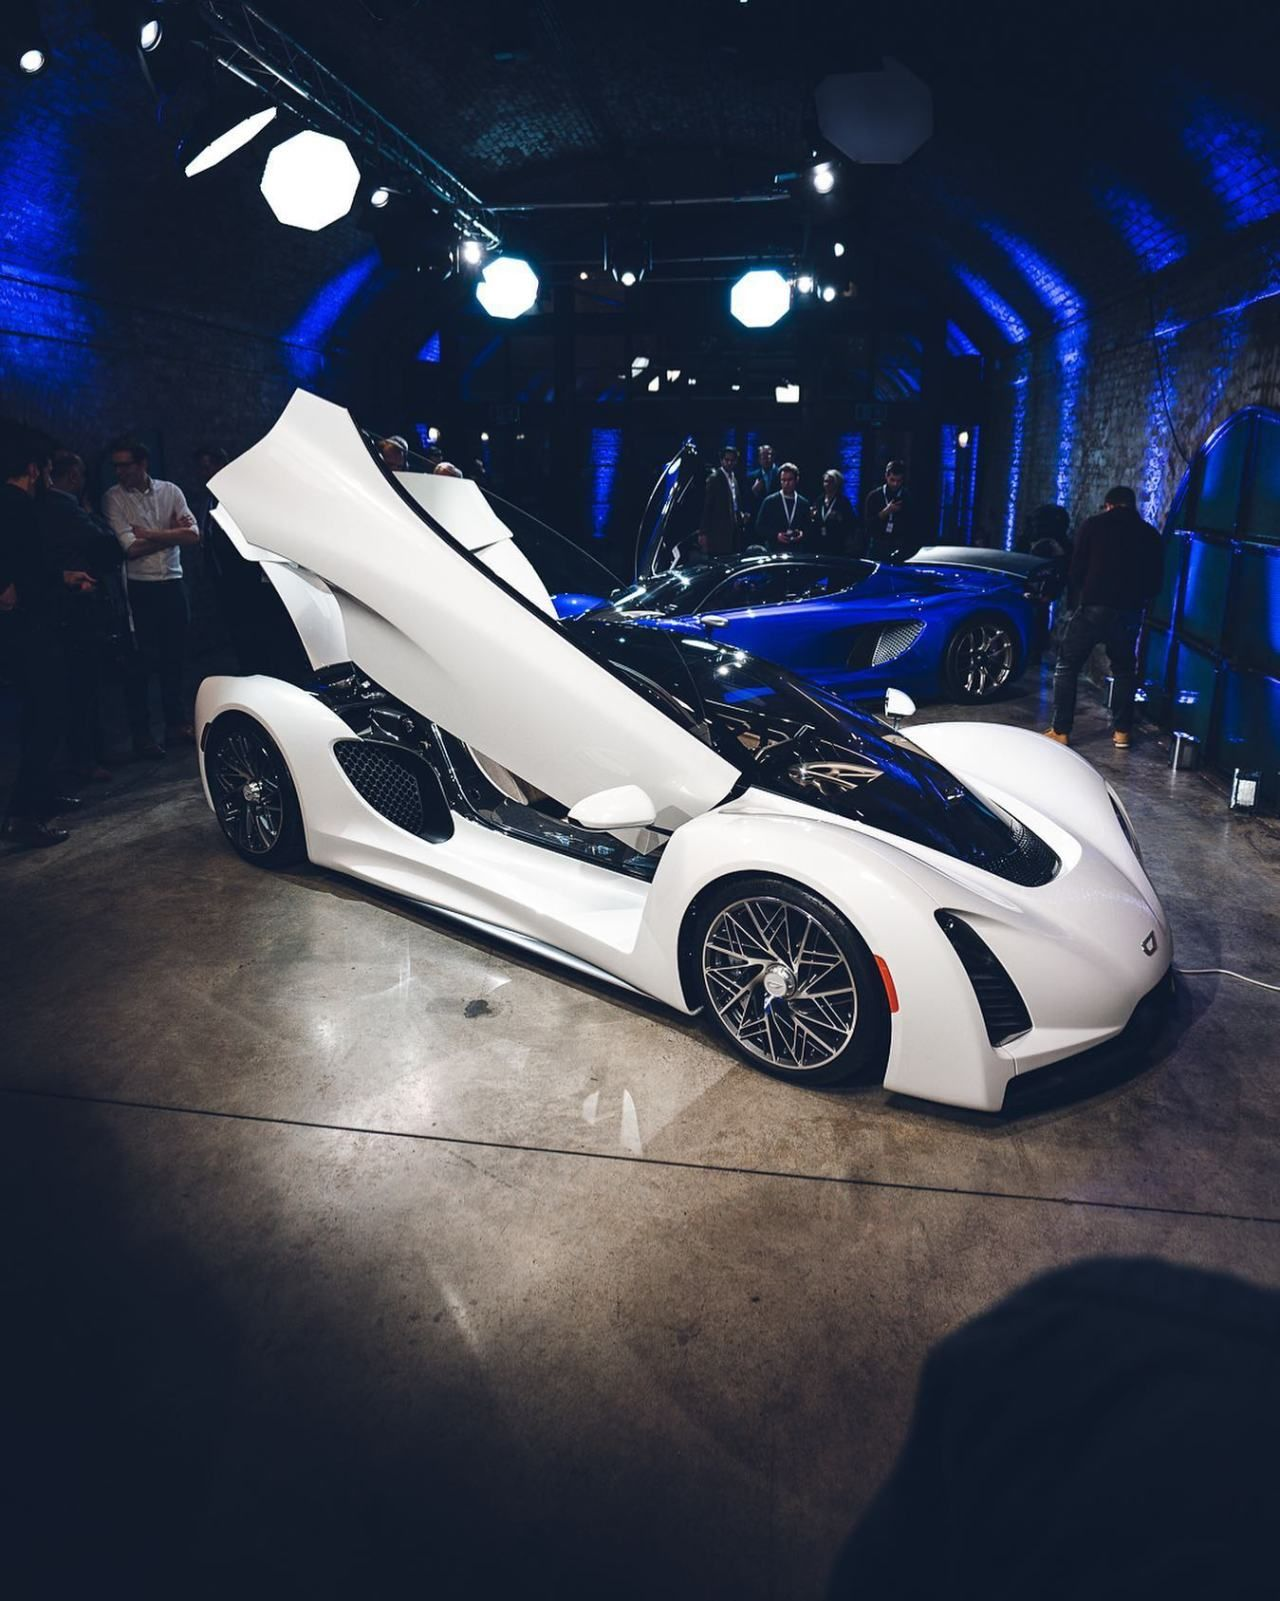 New Cars And Supercars The Latest Cars Here Http Howtocomparecarinsurance Net Facebook Http Facebook Com Cars360 In 2020 Latest Cars Super Cars Top 10 Supercars